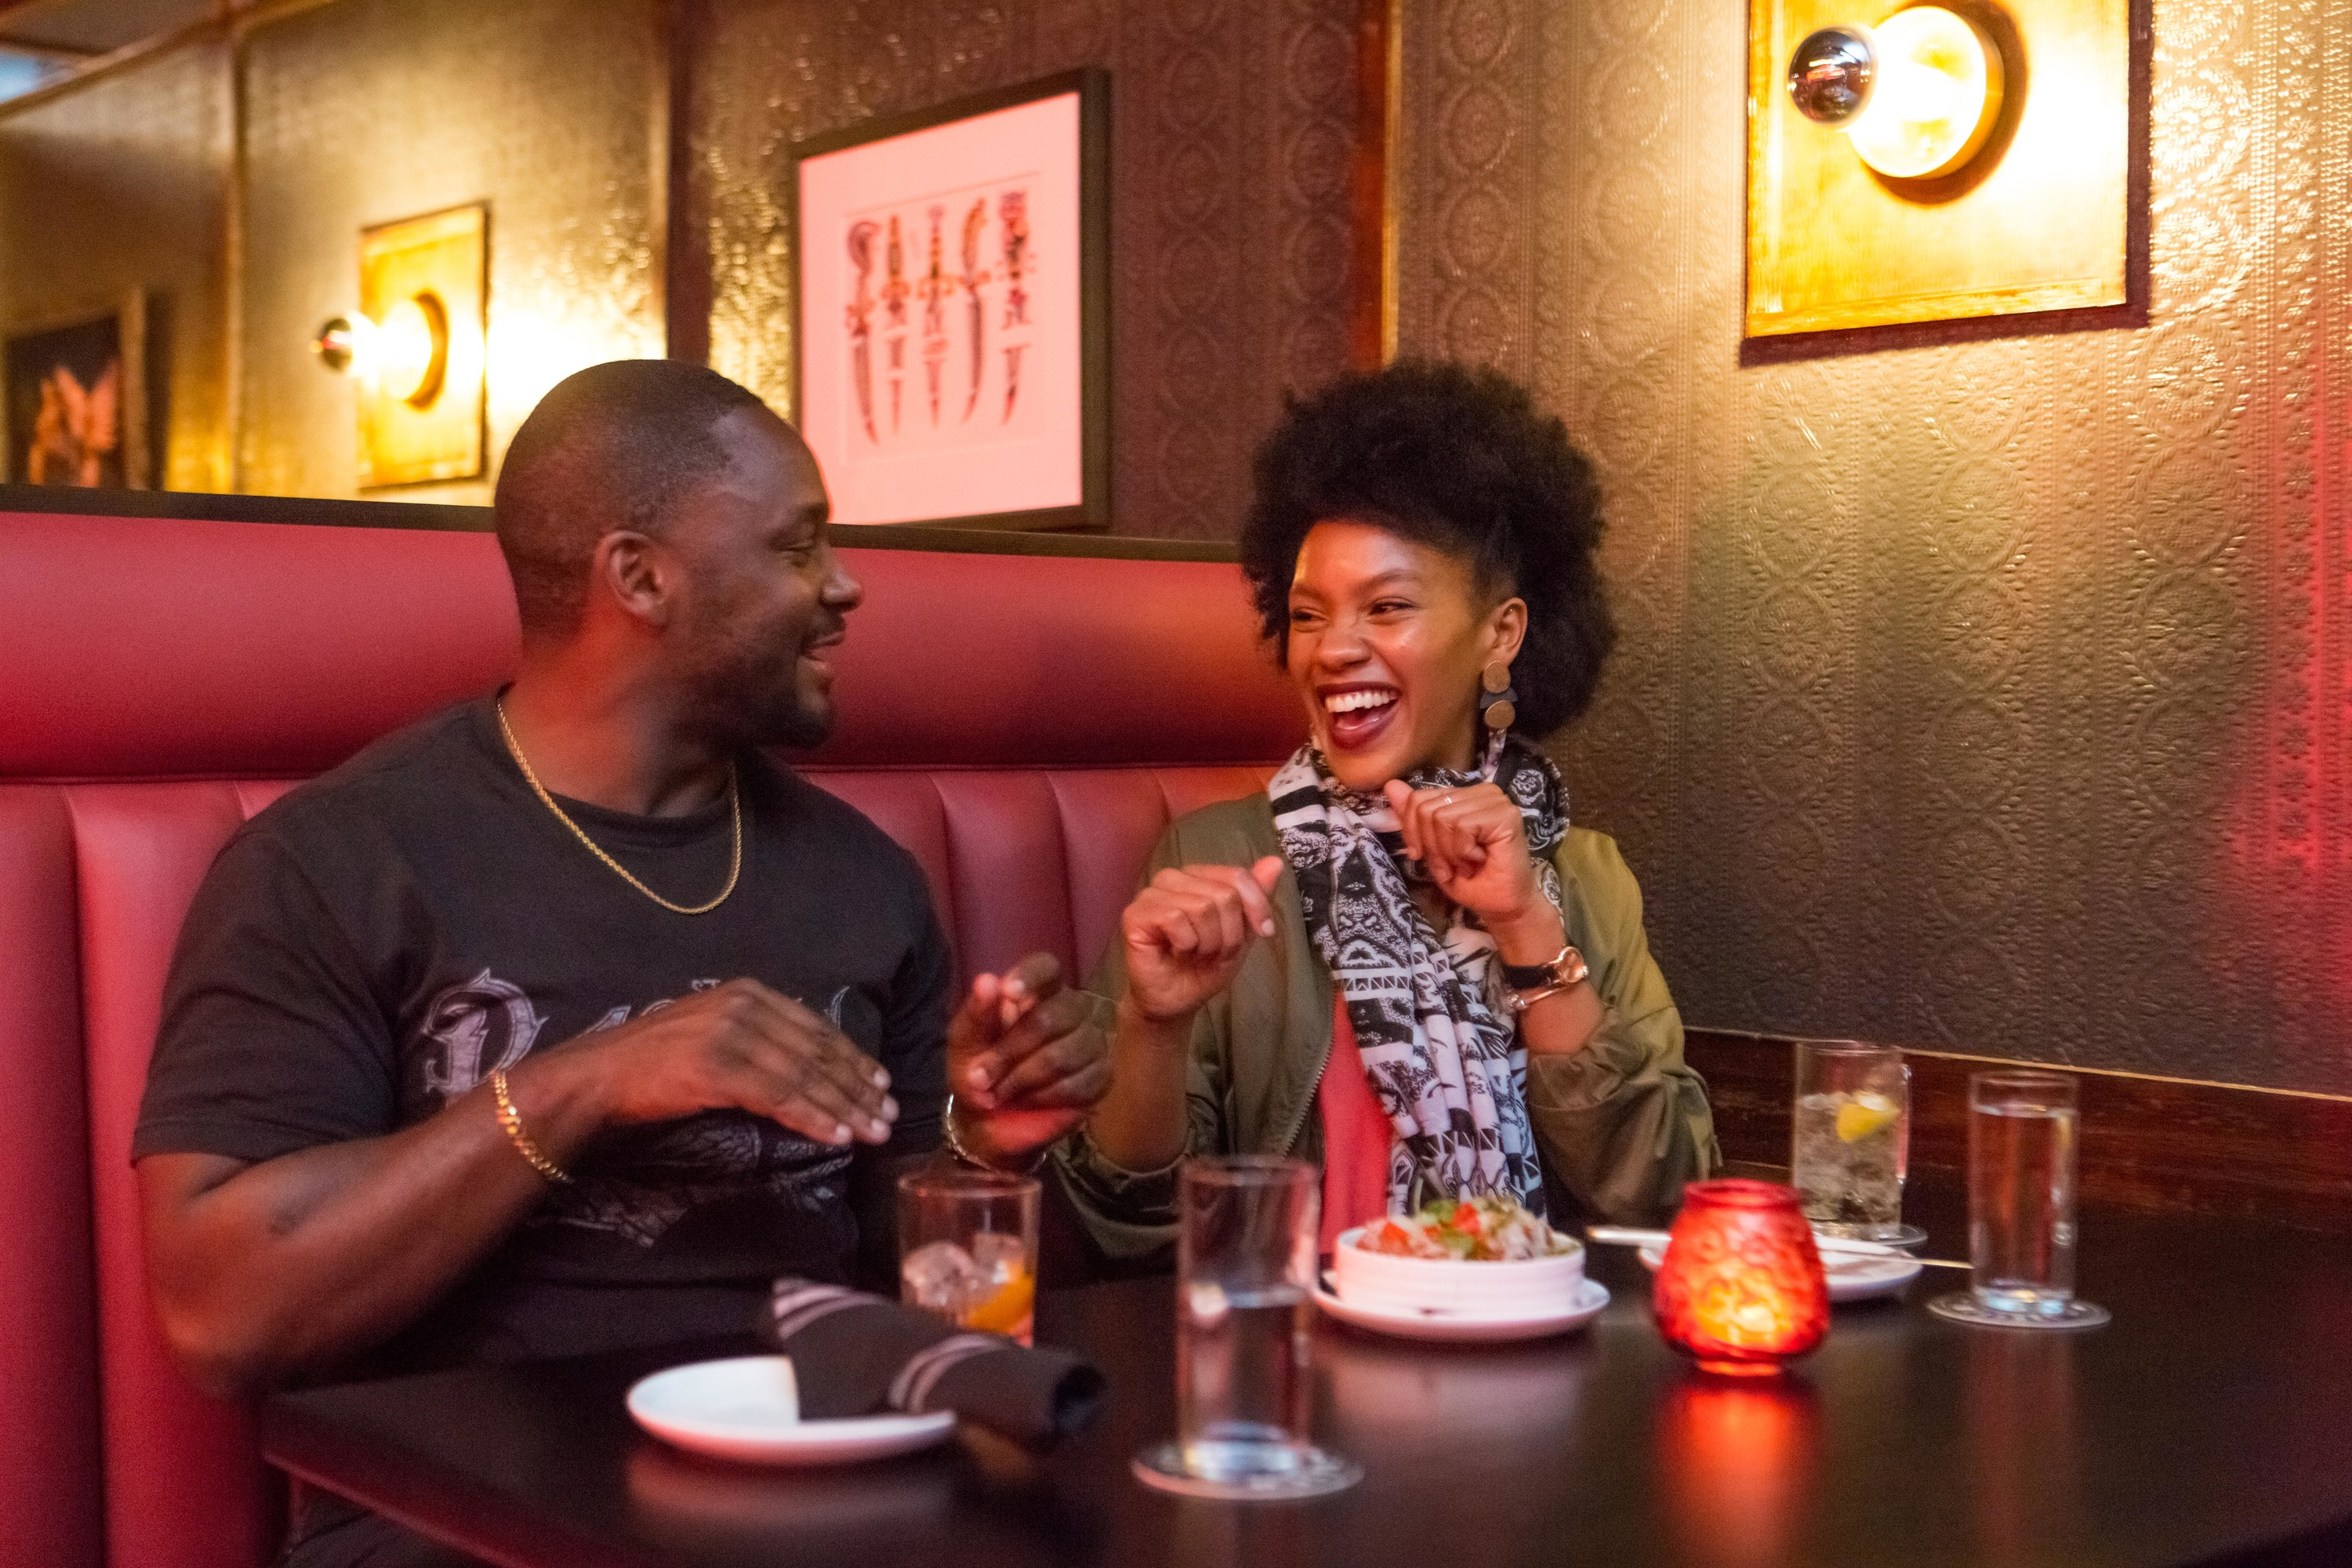 We set up two Chicagoans on a blind date in River North—here's what happened